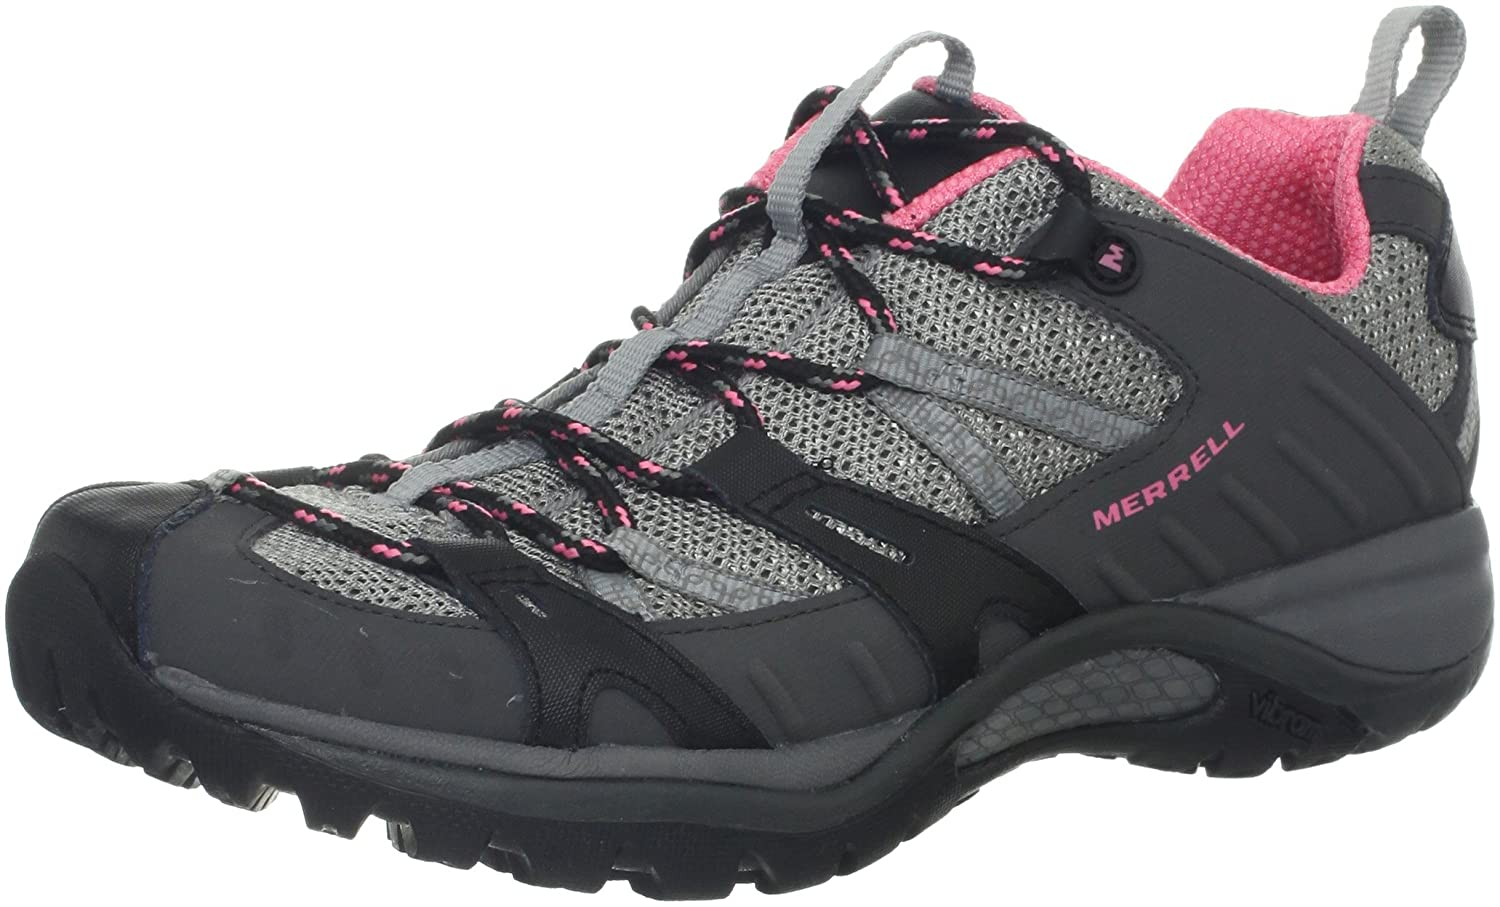 Merrell Women's Siren Sport 2 Hiking Shoe